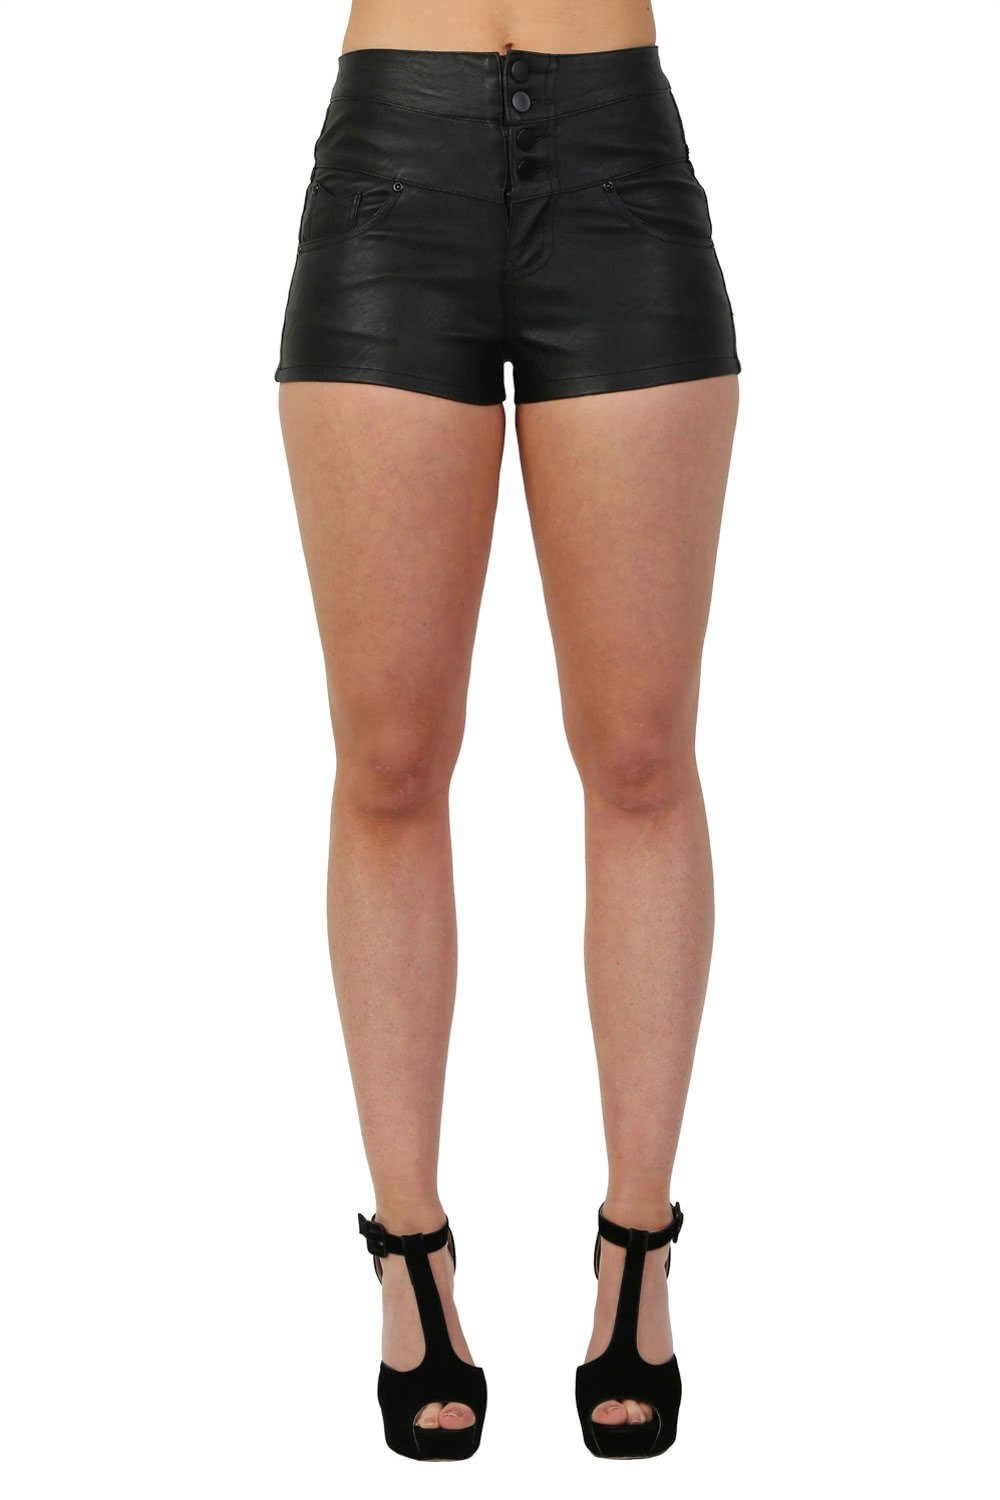 Shorts - PU High Waist 4 Button Detail Shorts In Black